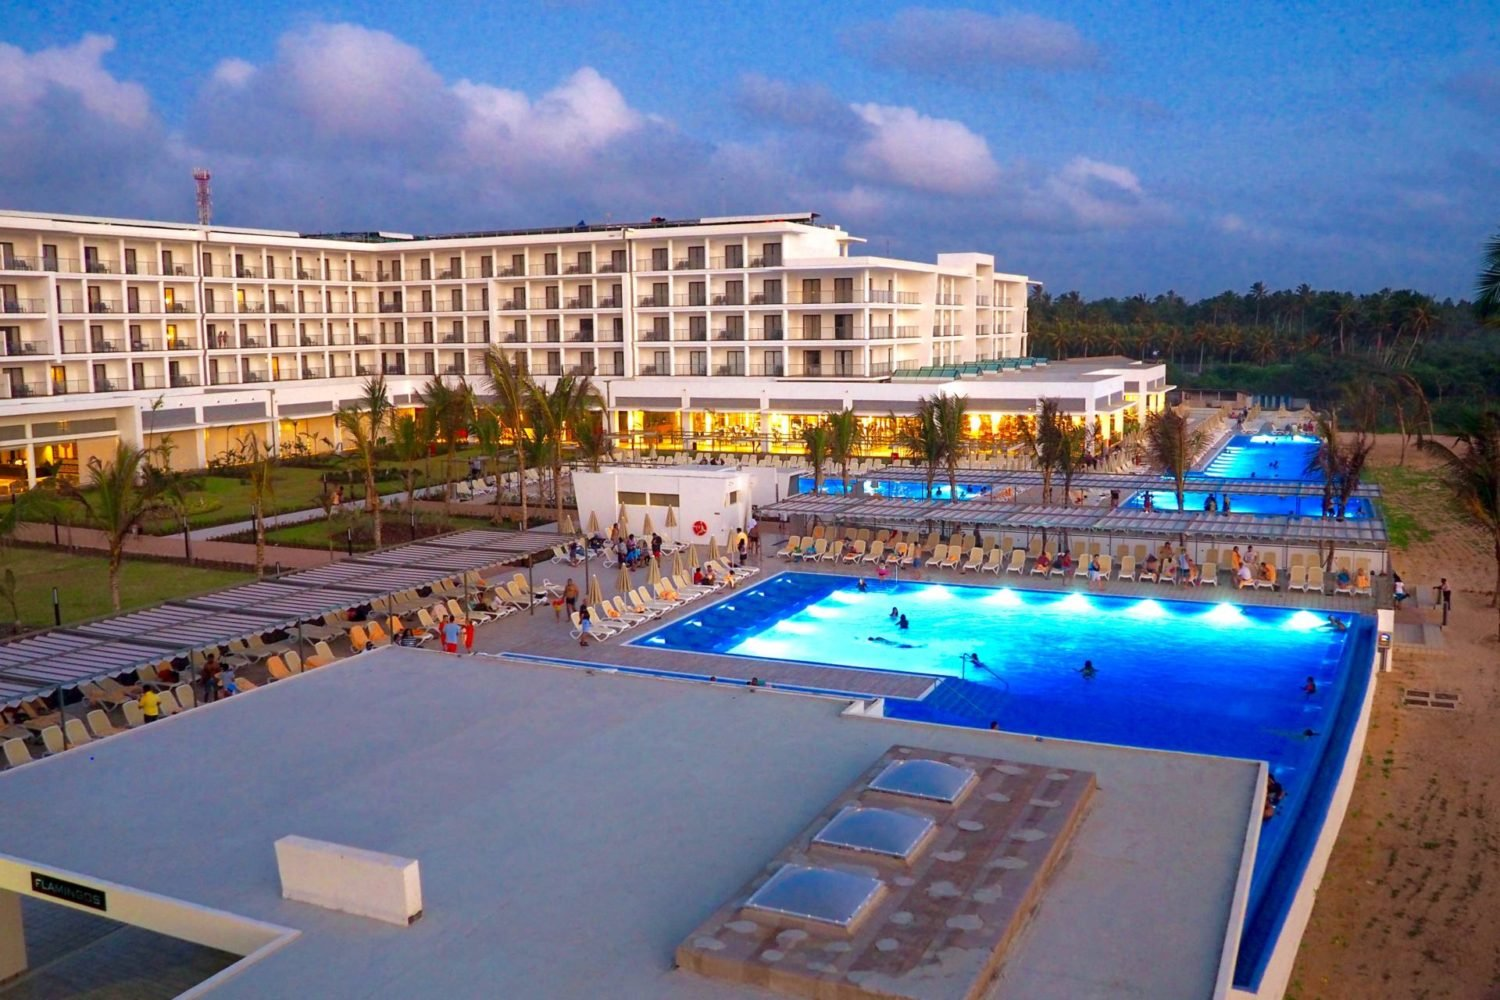 Riu Hotel Sri Lanka Review Swimming Pool While I 39 M Young